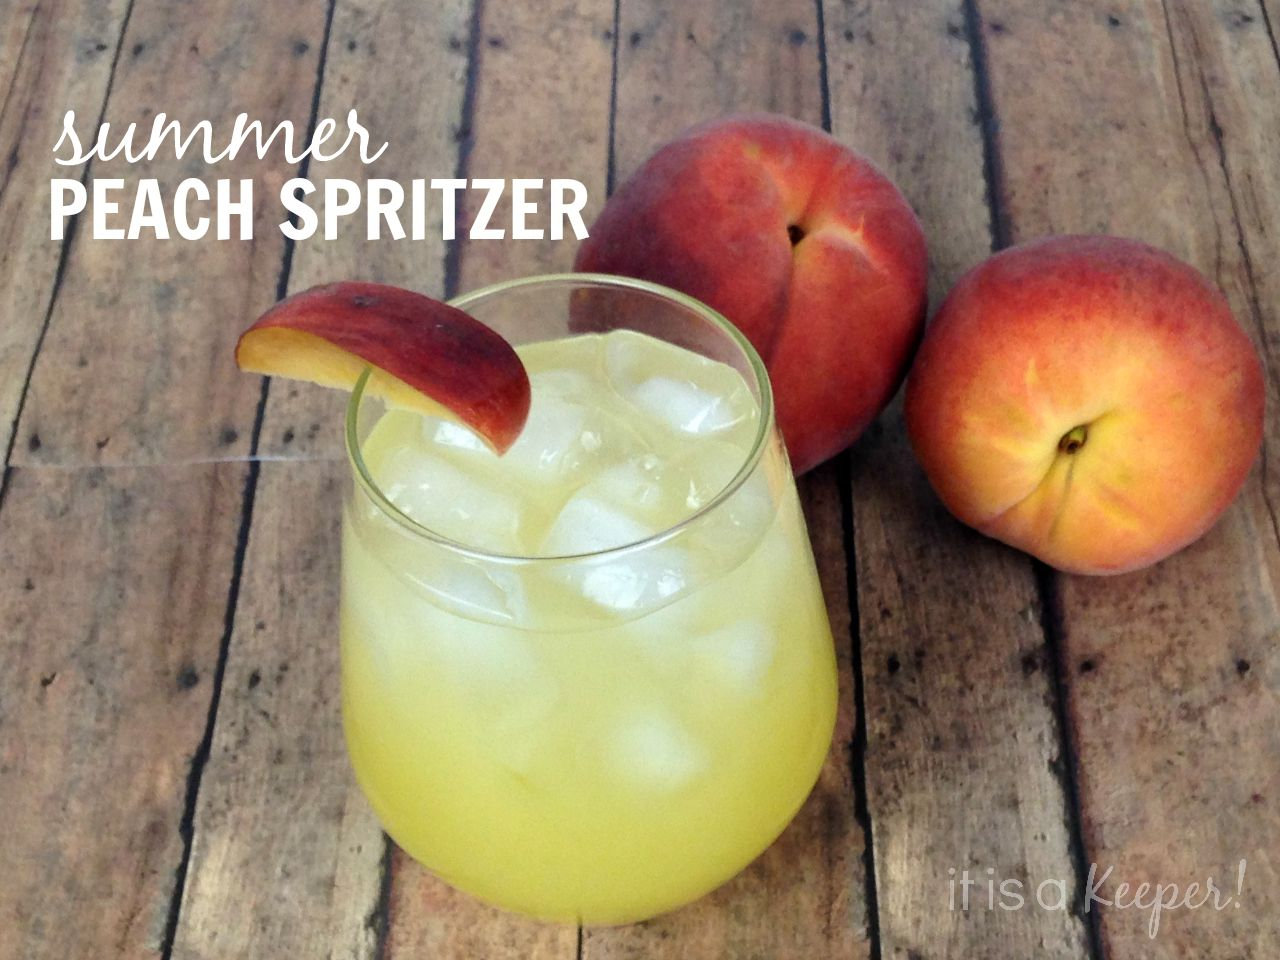 This Summer Peach Spritzer is an easy cocktail recipe - It Is a Keeper